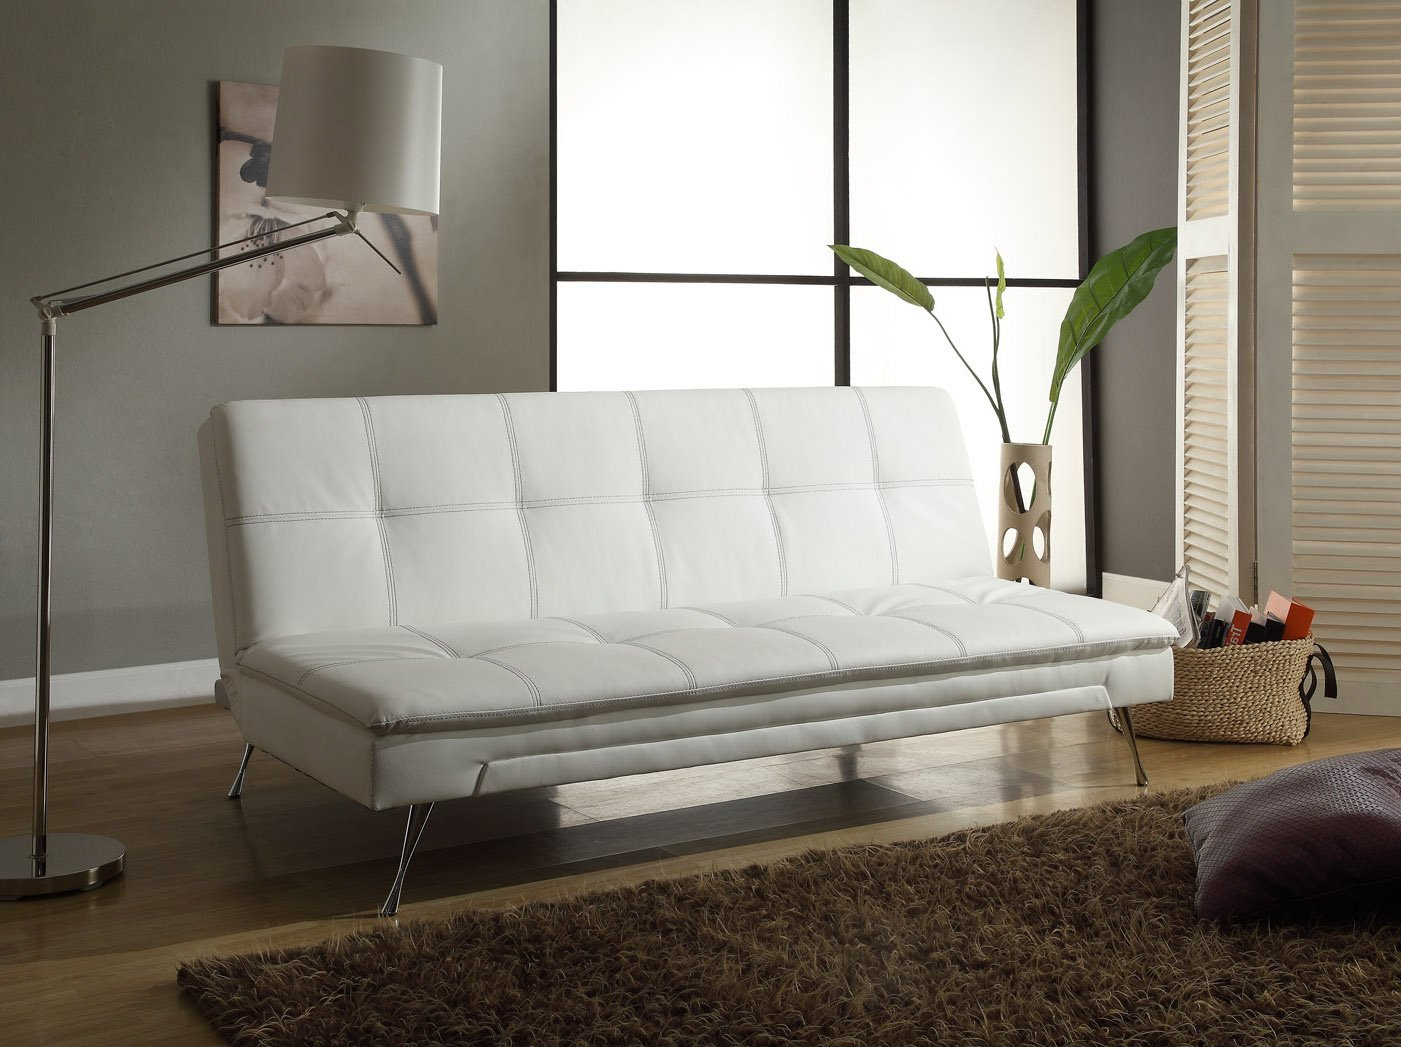 Buy cheap sofa cheap sectional sofa for Affordable sofas for sale